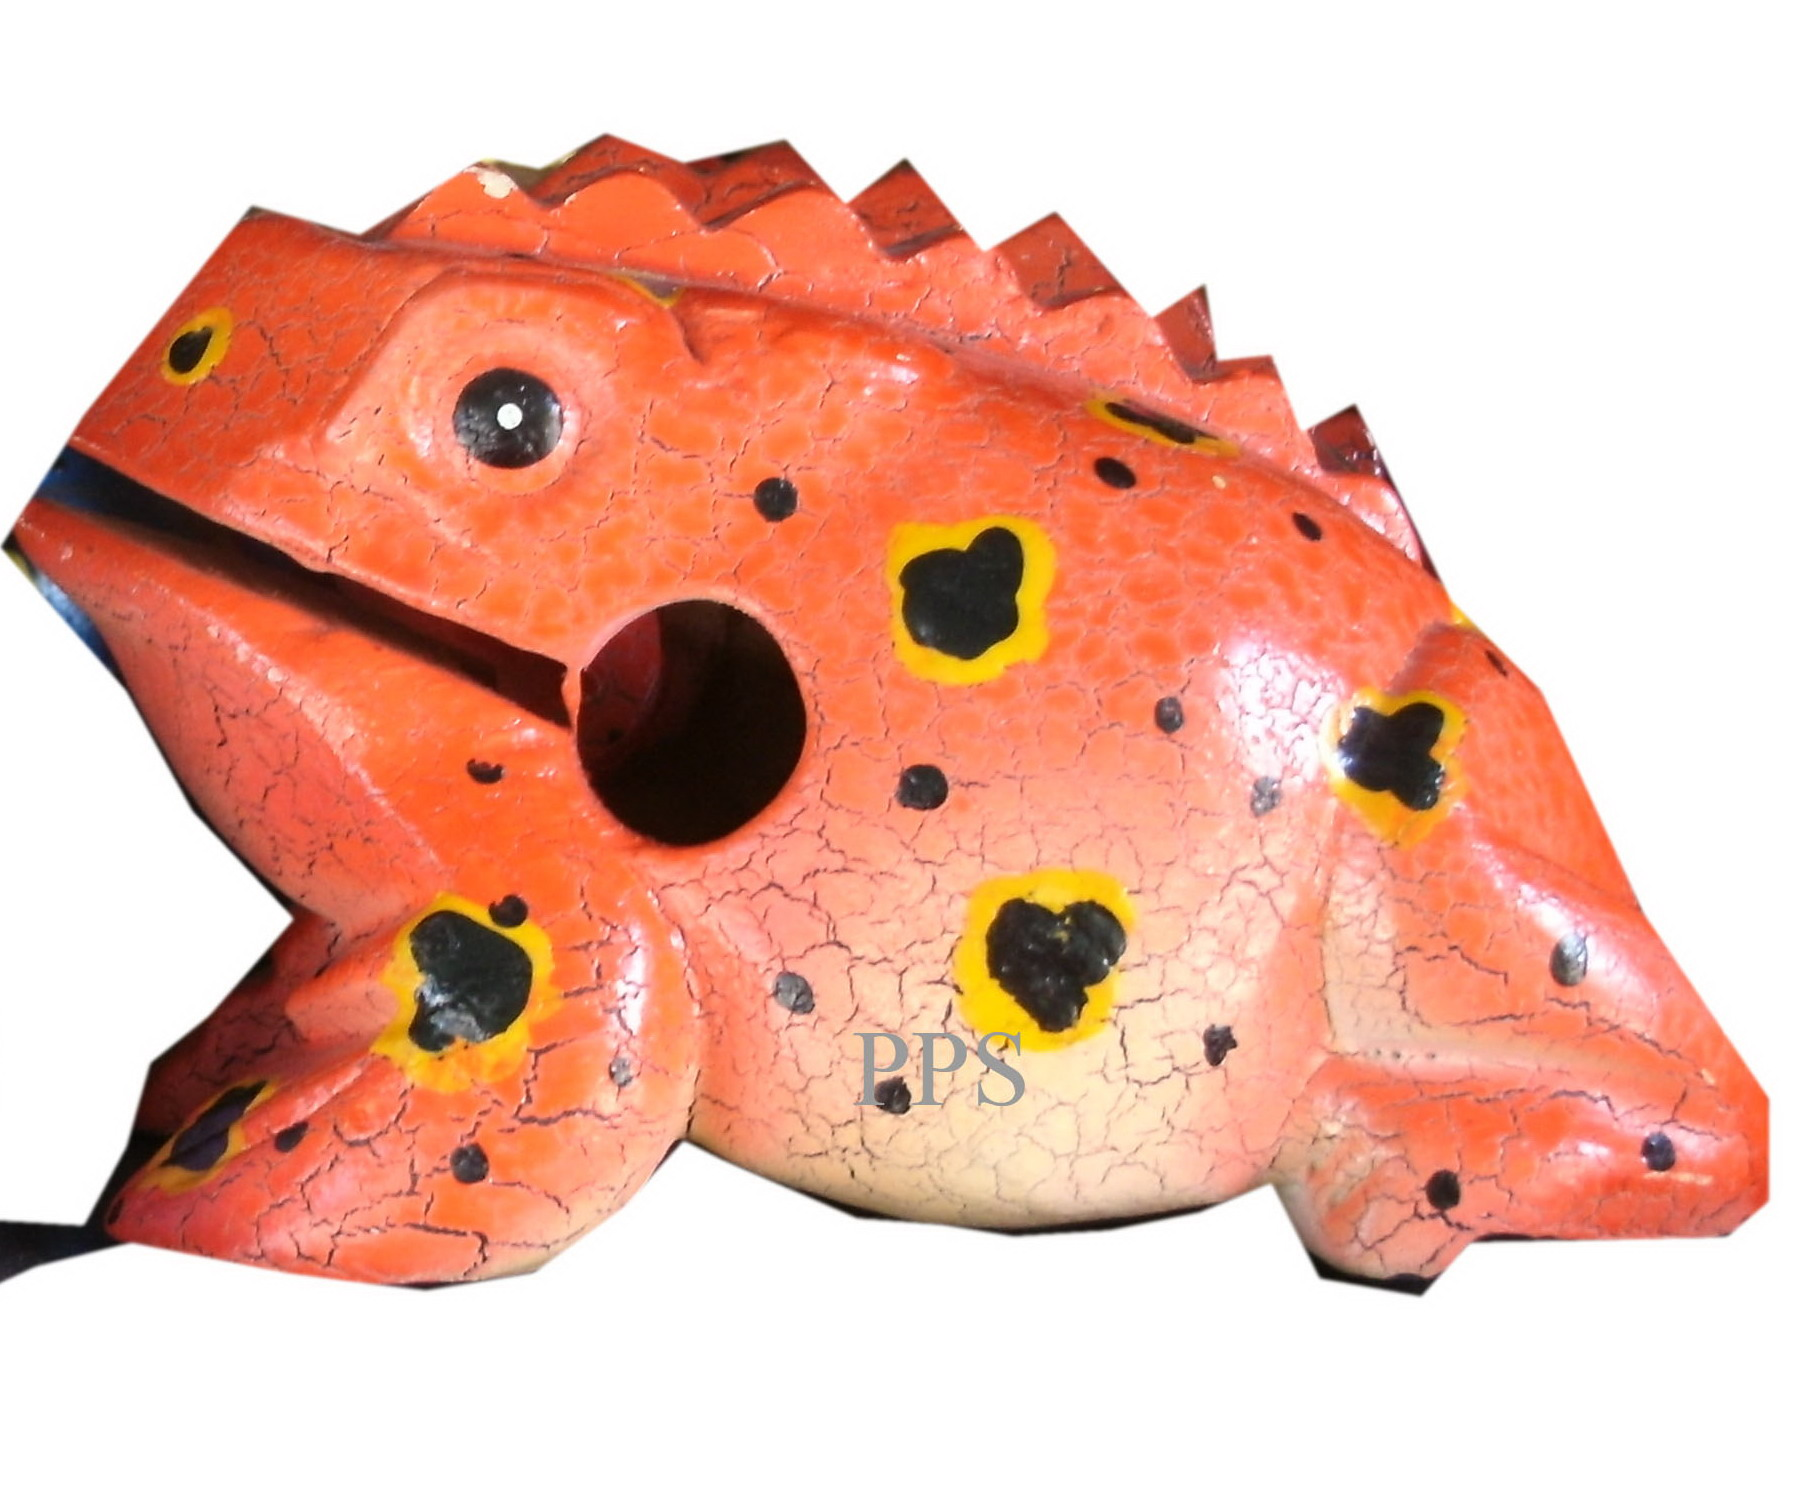 Croakingfrog0208-11